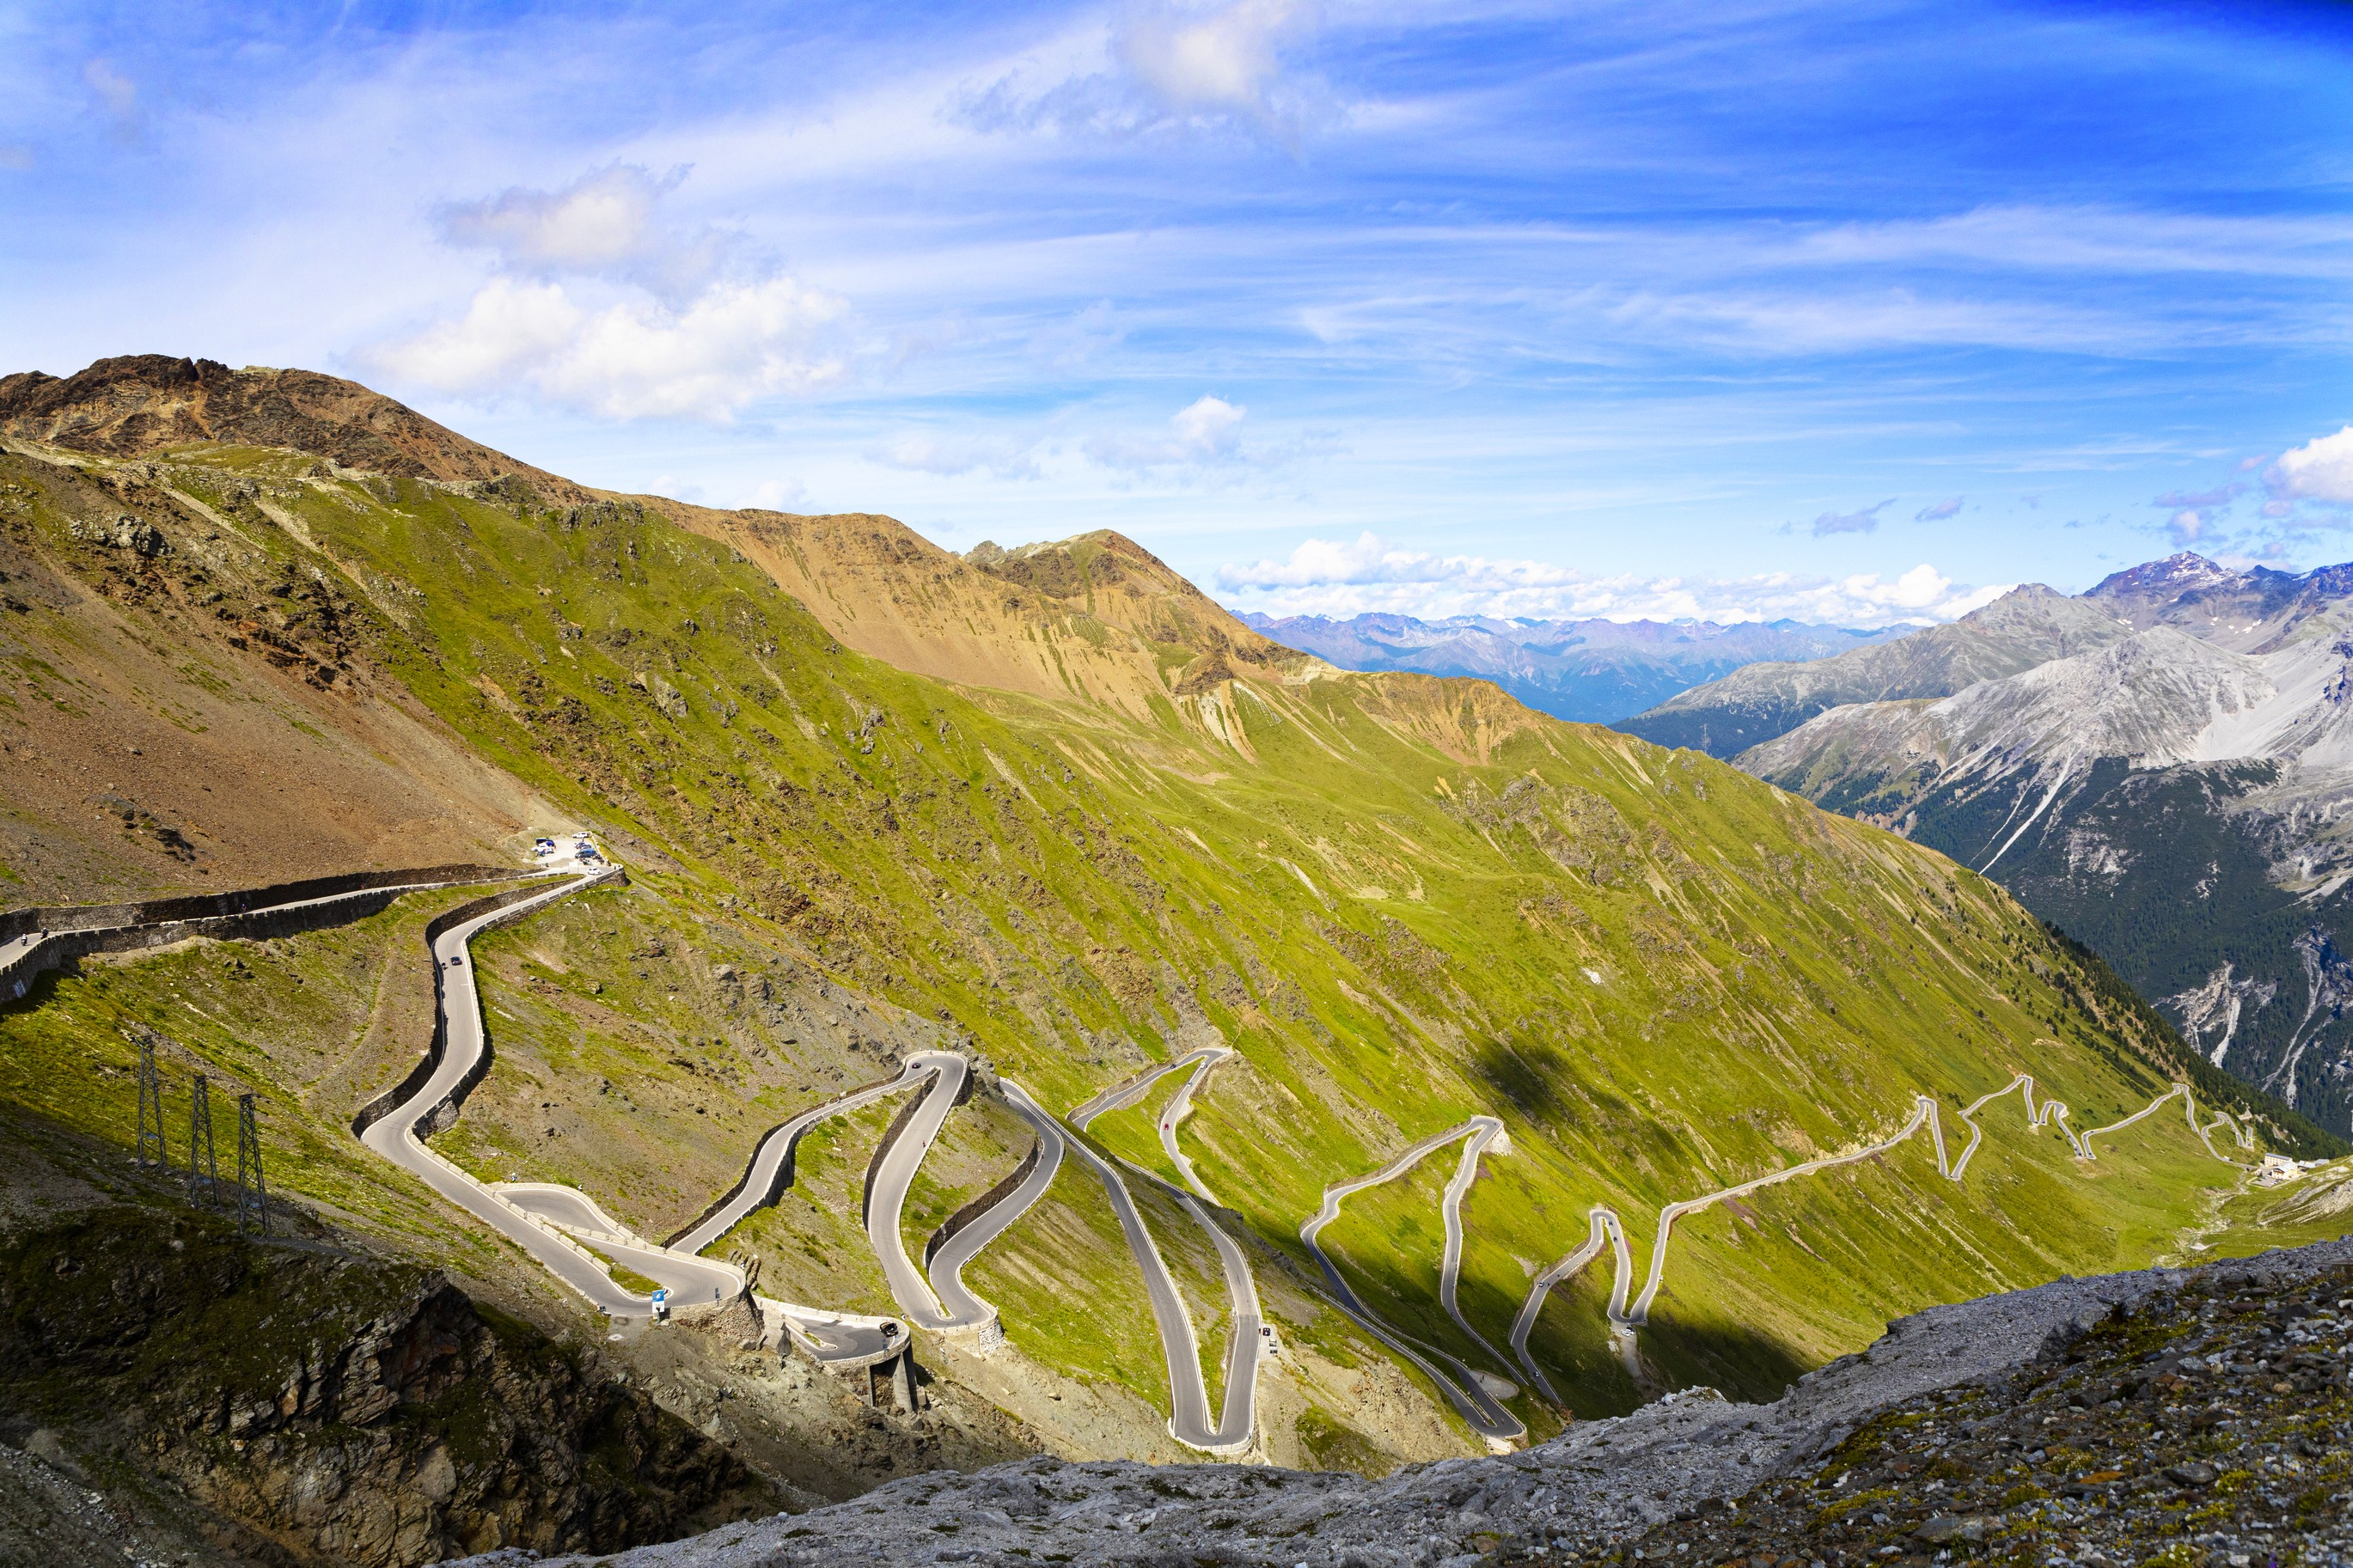 The Stelvio pass in Italy—a winding road through the Dolomites